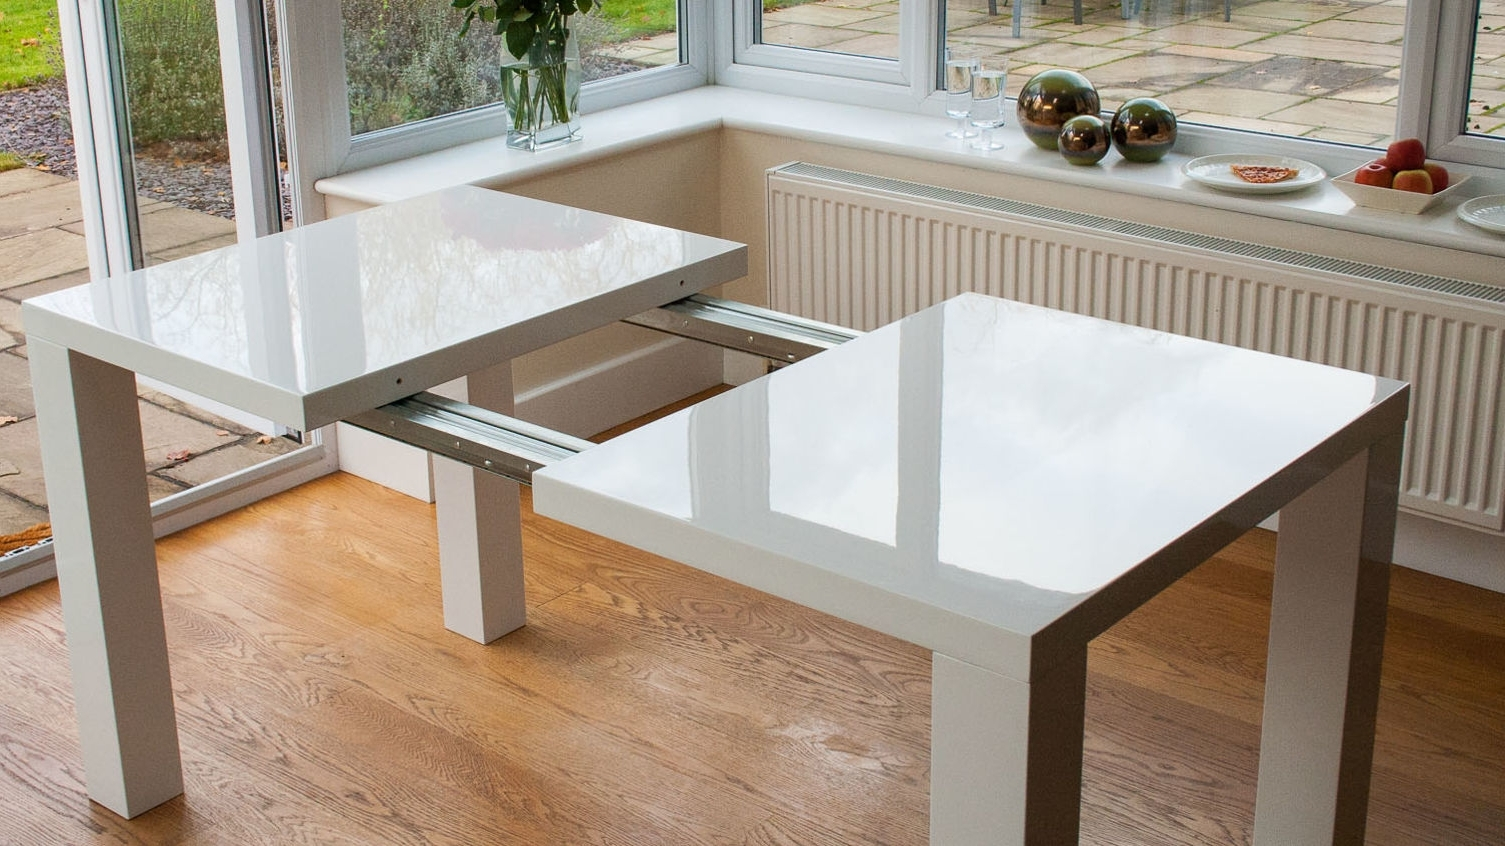 Architecture Ideas Intended For Extending Dining Table With 10 Seats (View 15 of 25)